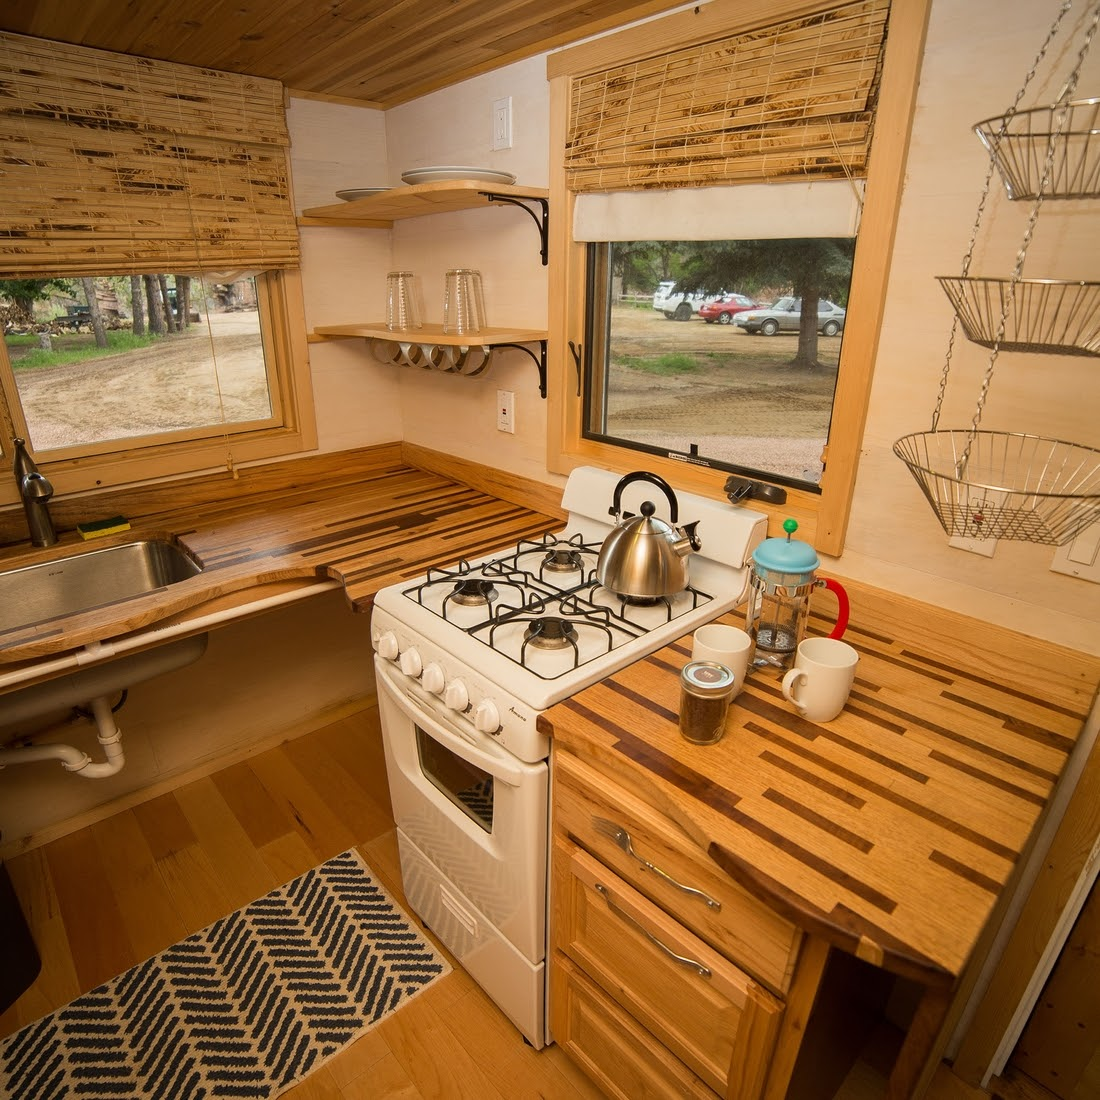 09-Kitchen-WeeCasa-The-Pequod-Tiny-House-Architecture-www-designstack-co